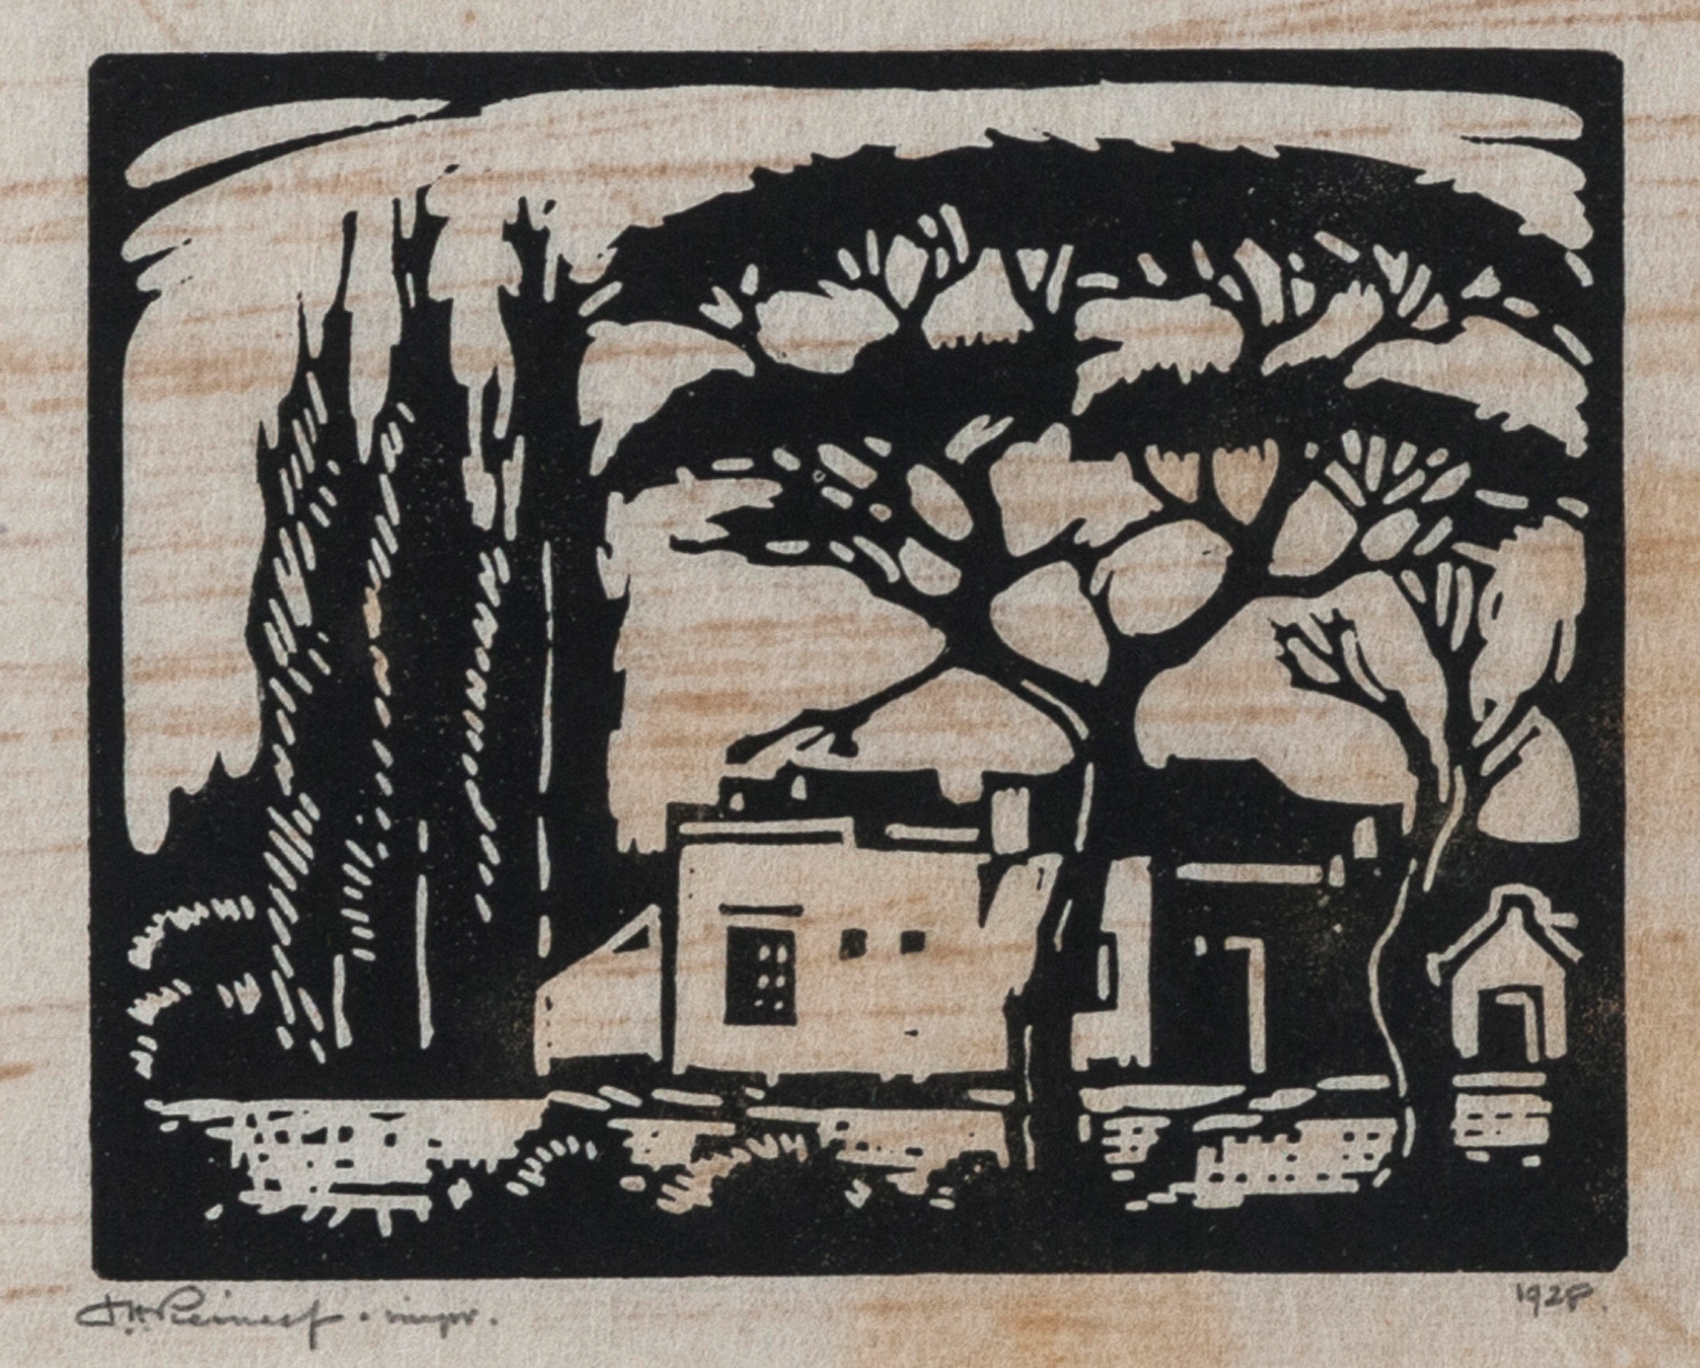 LOT 317 – Jacob Hendrik Pierneef (1886-1957). PLAASHUIS, RUSTENBURG Linocut On Paper, Signed And Dated 1928